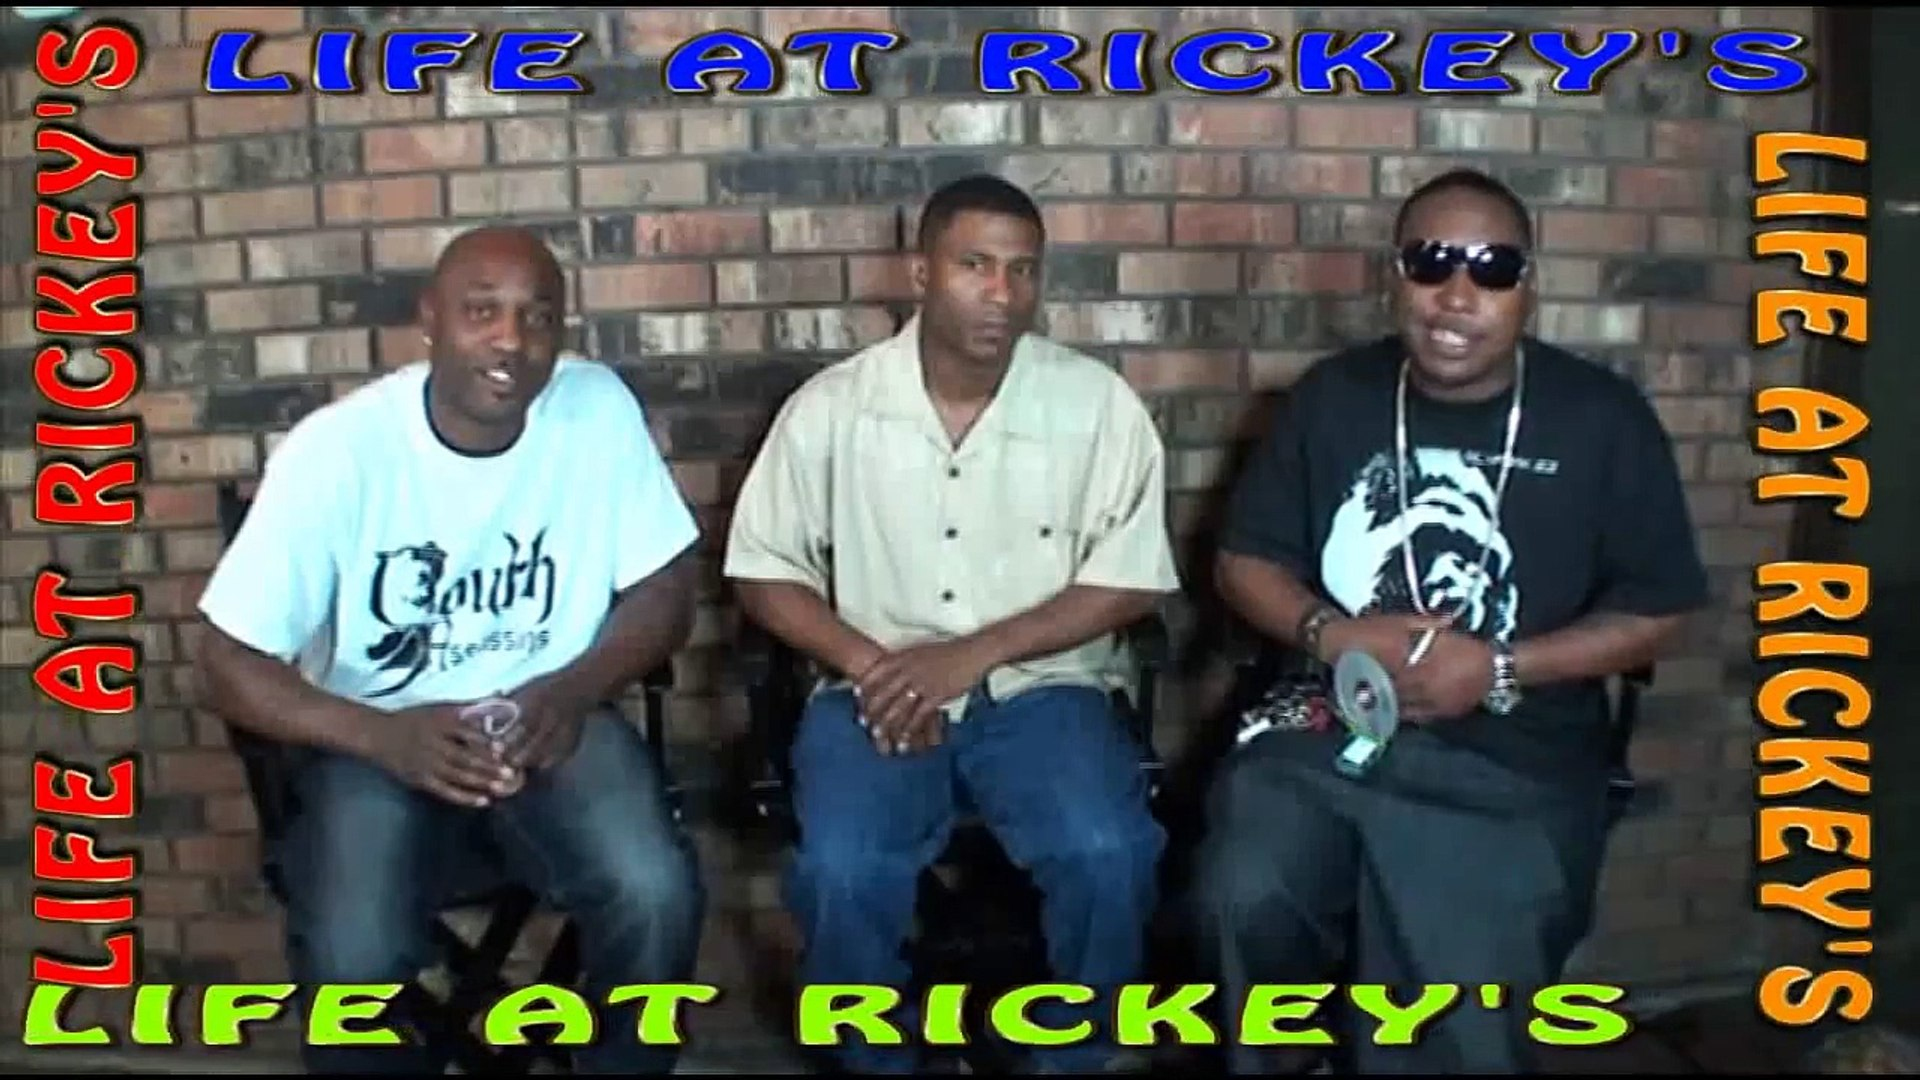 THE BOTTOM LINE 5 OF 15 Quirt'em up LIFE AT RICKEY'S